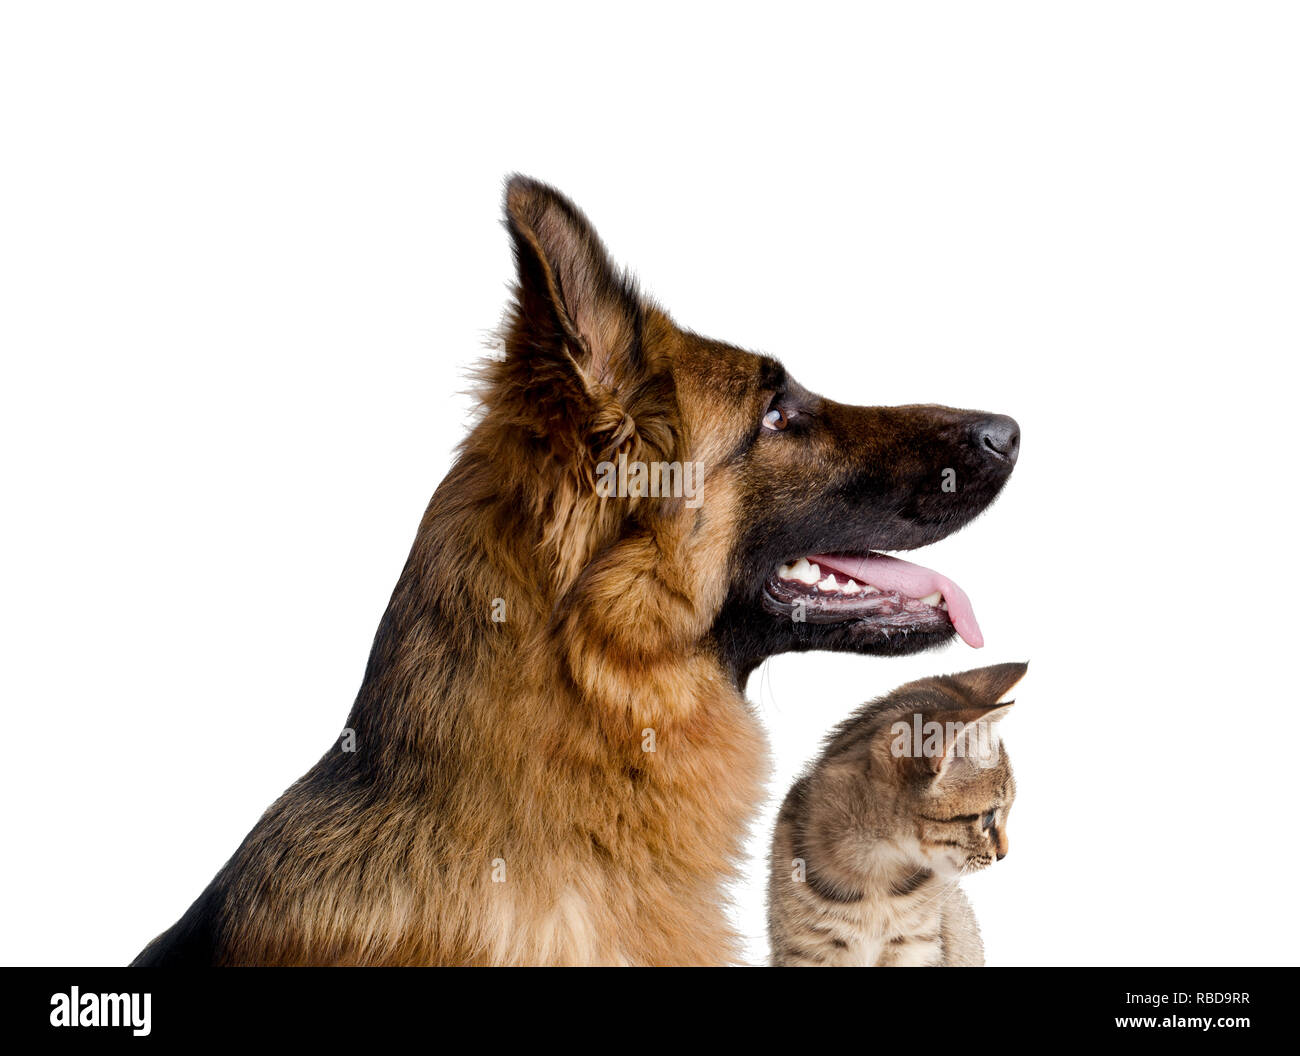 Portrait of a dog and a cat close up isolated on white background. German shepherd and little kitten. - Stock Image